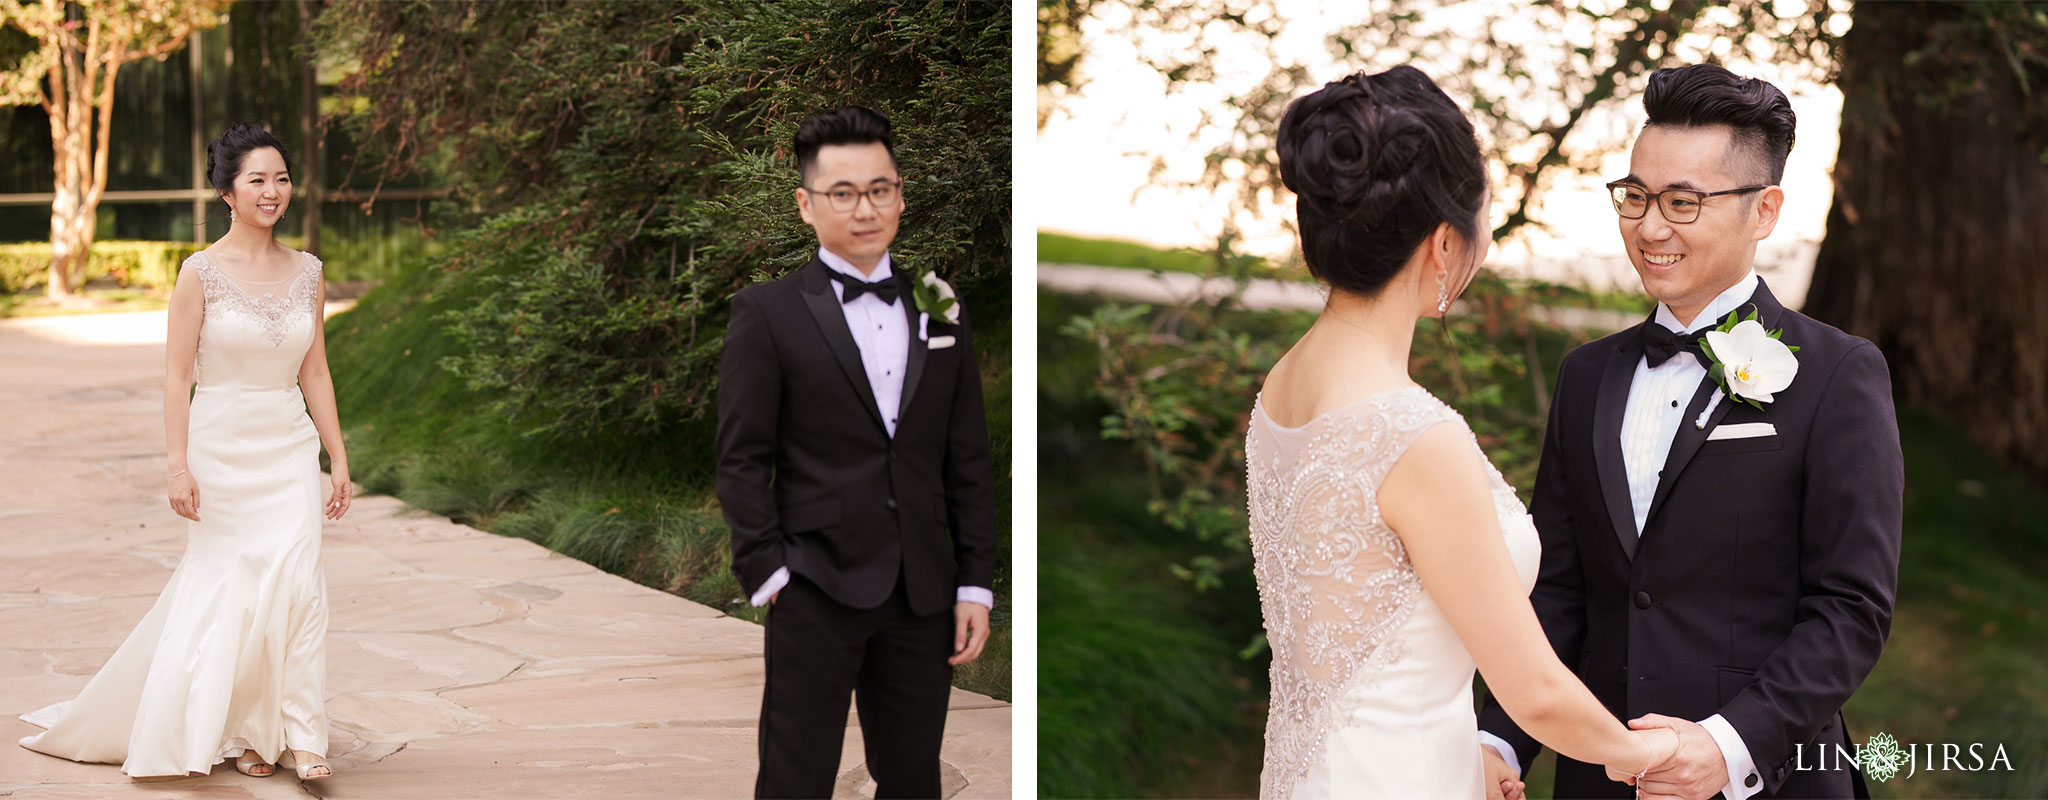 11 segerstrom center for the arts costa mesa wedding photography